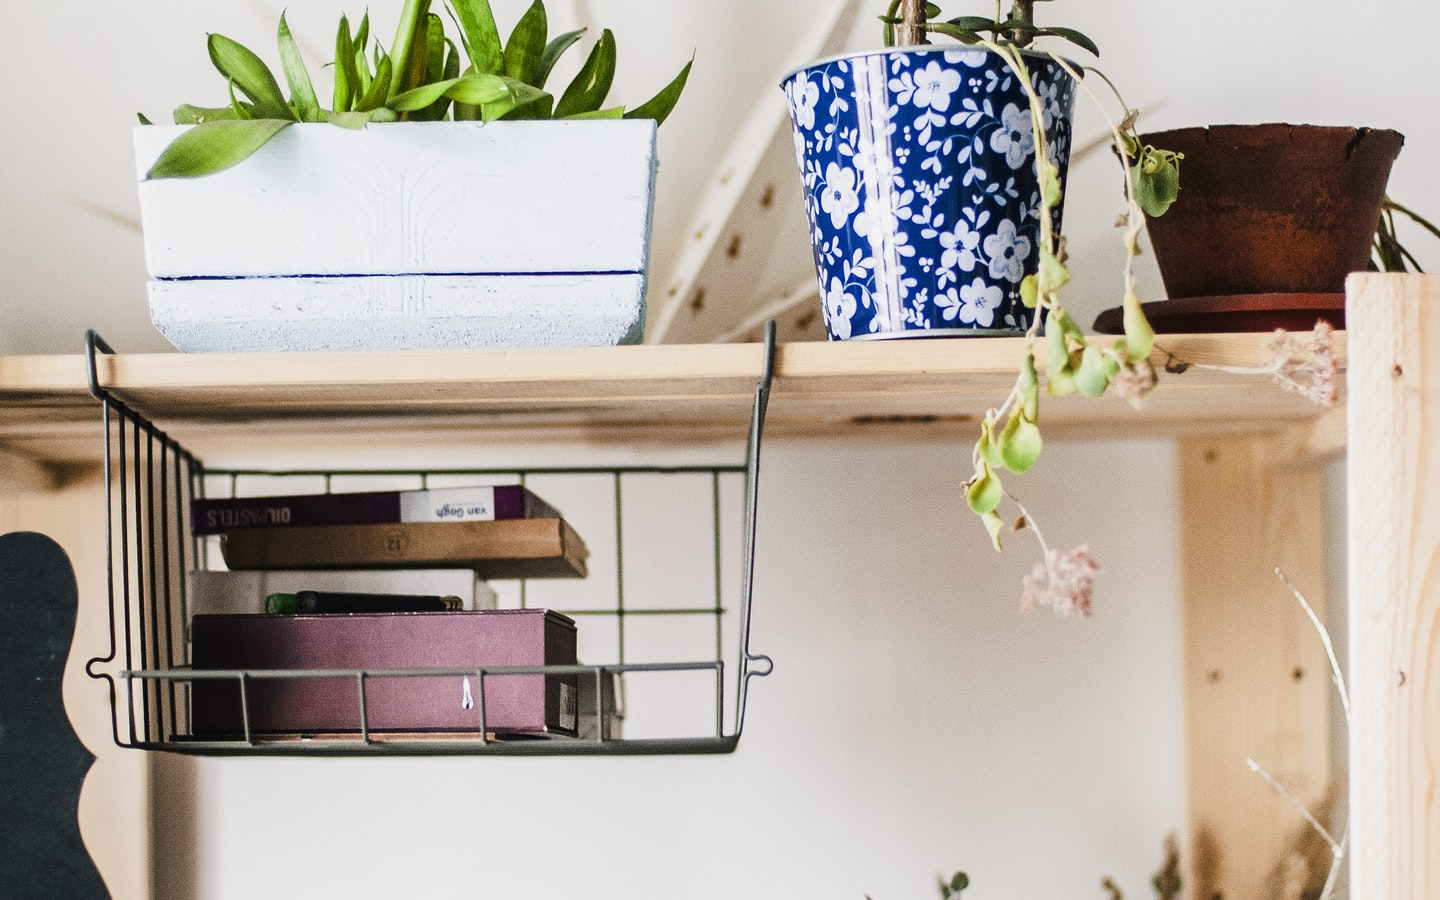 One of the most useful feng shui home decor tips is to declutter